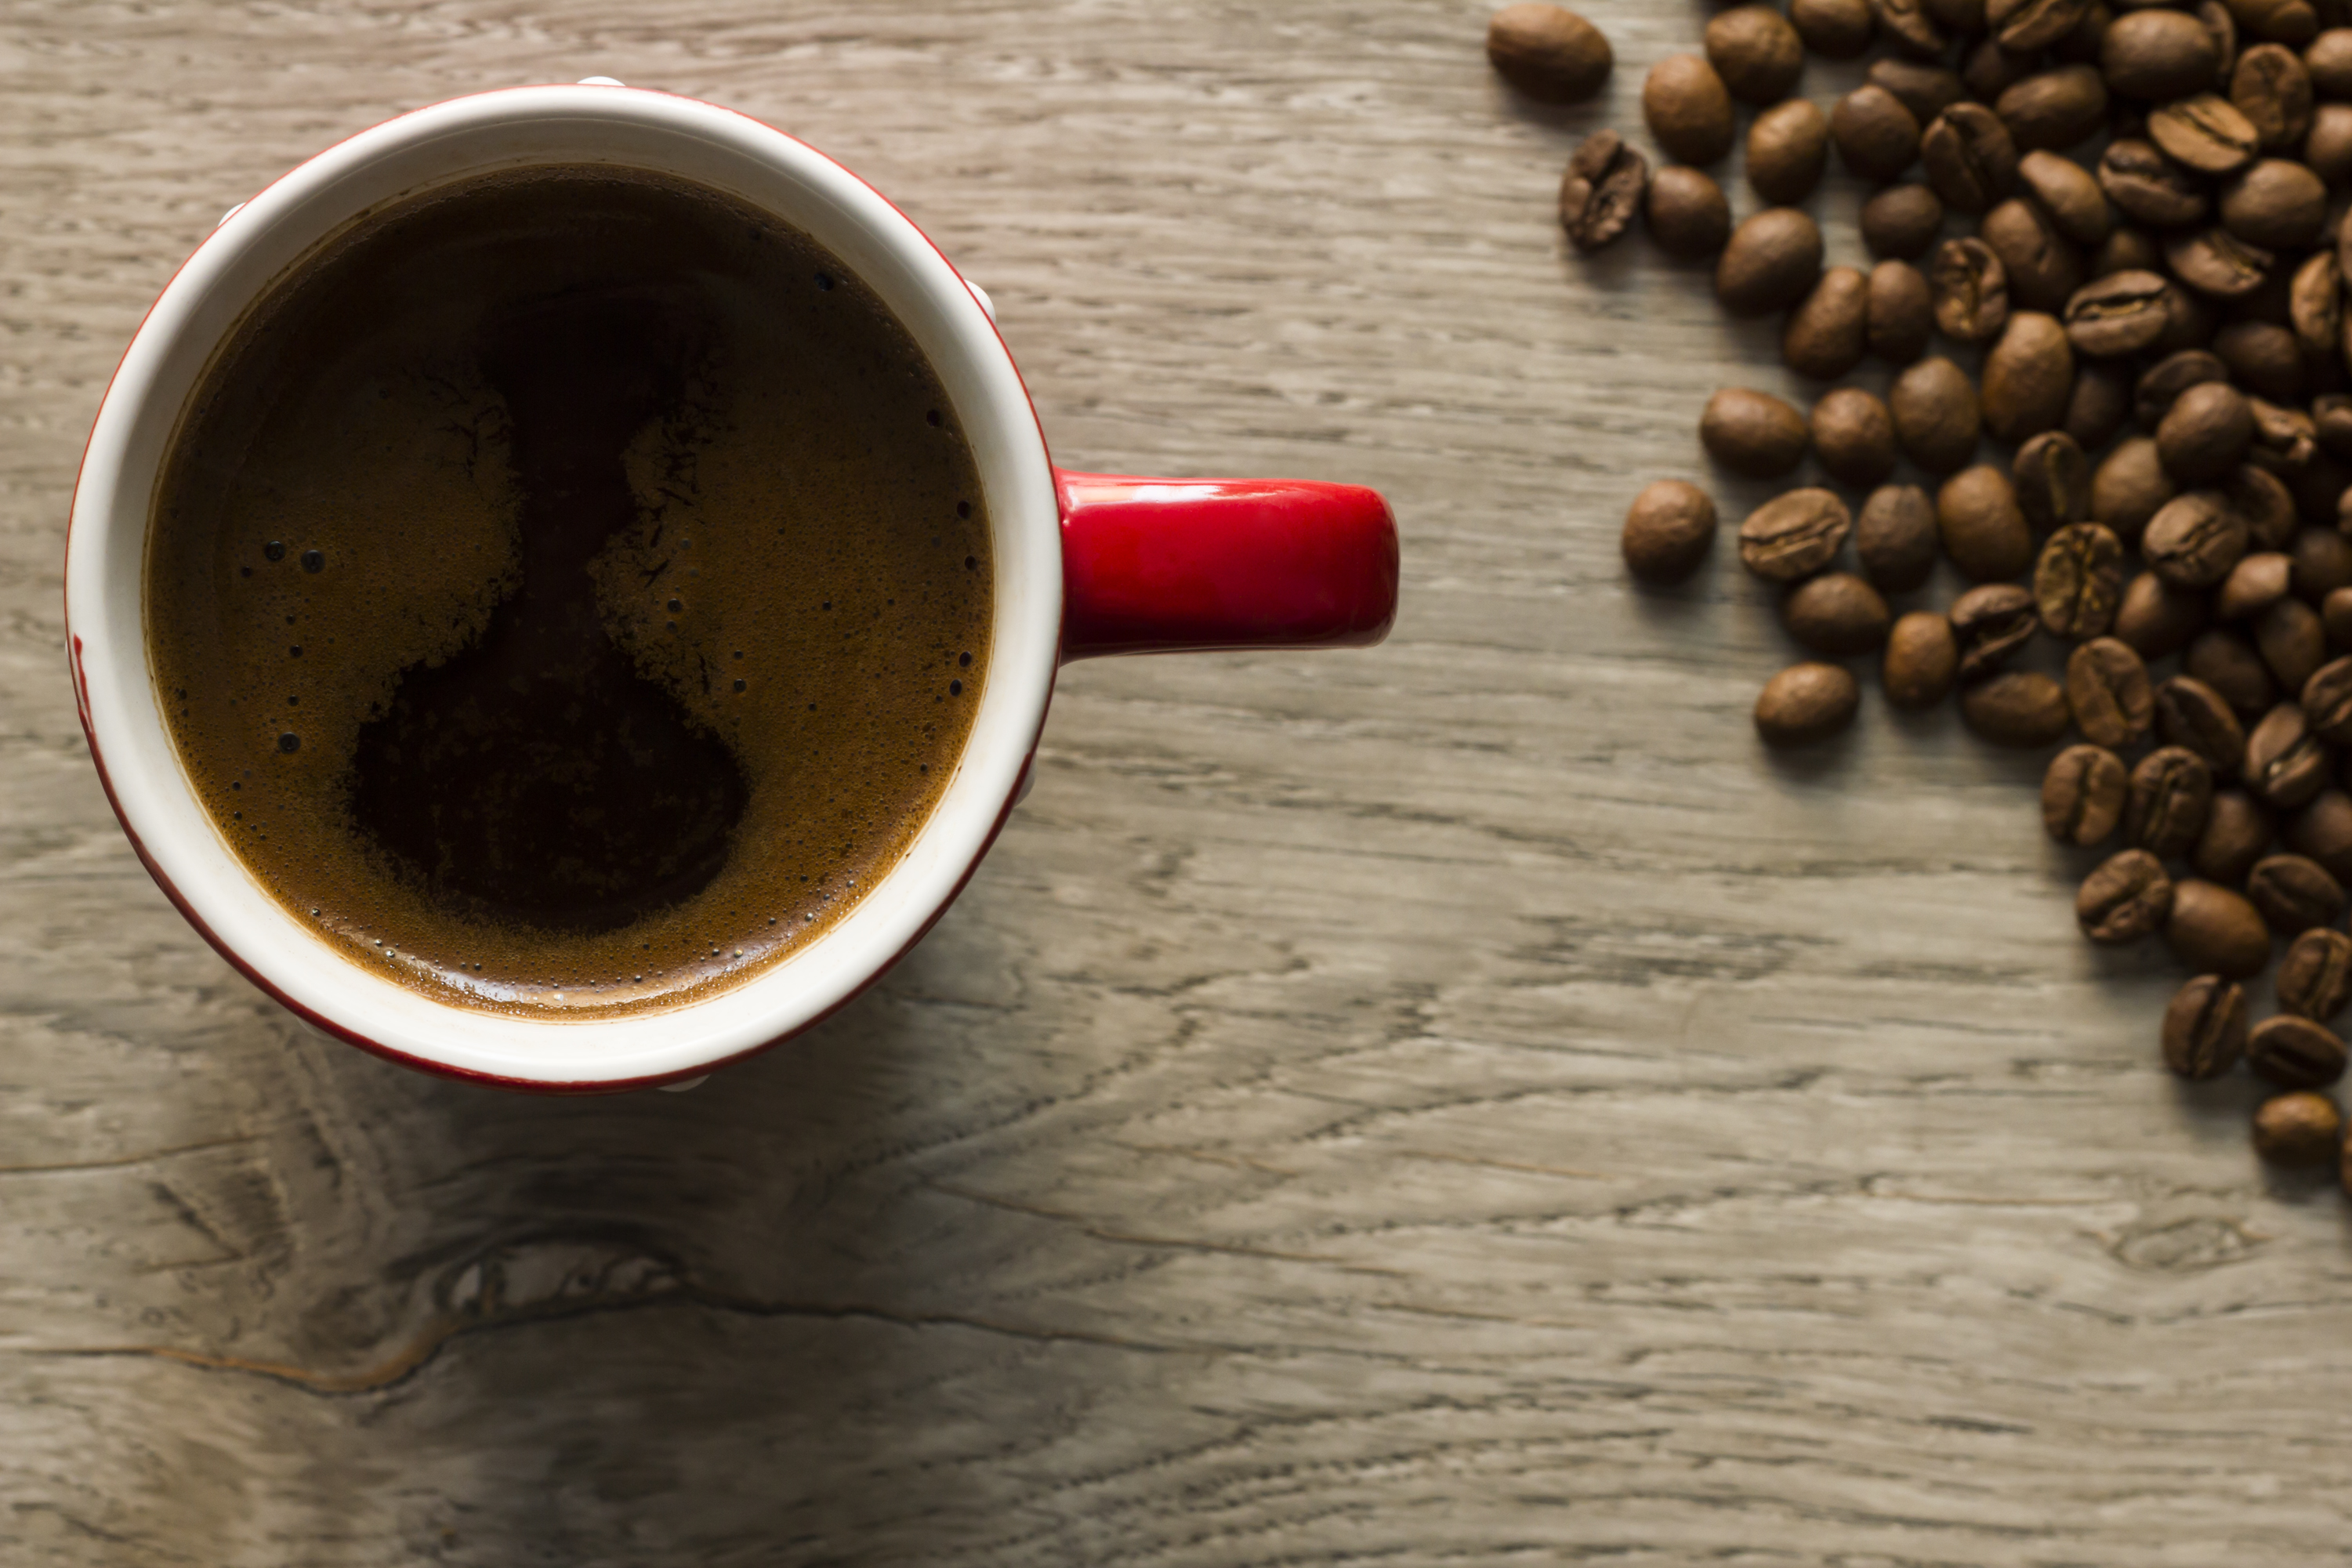 Cup of coffee and coffee beans viewed from directly above